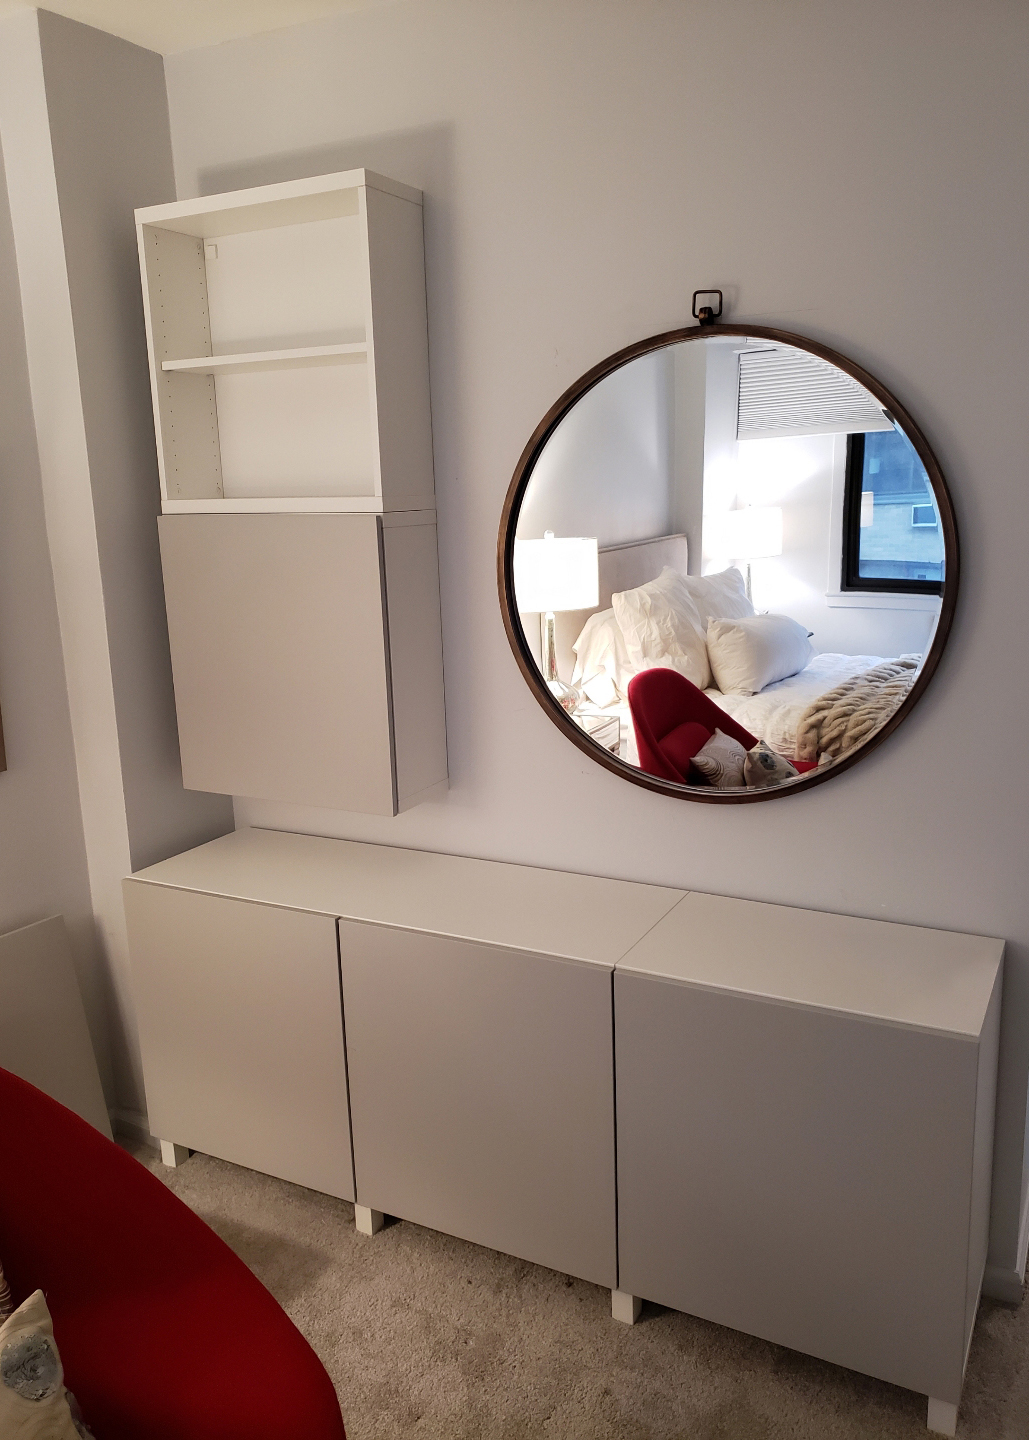 custom home improvement of dresser mirror